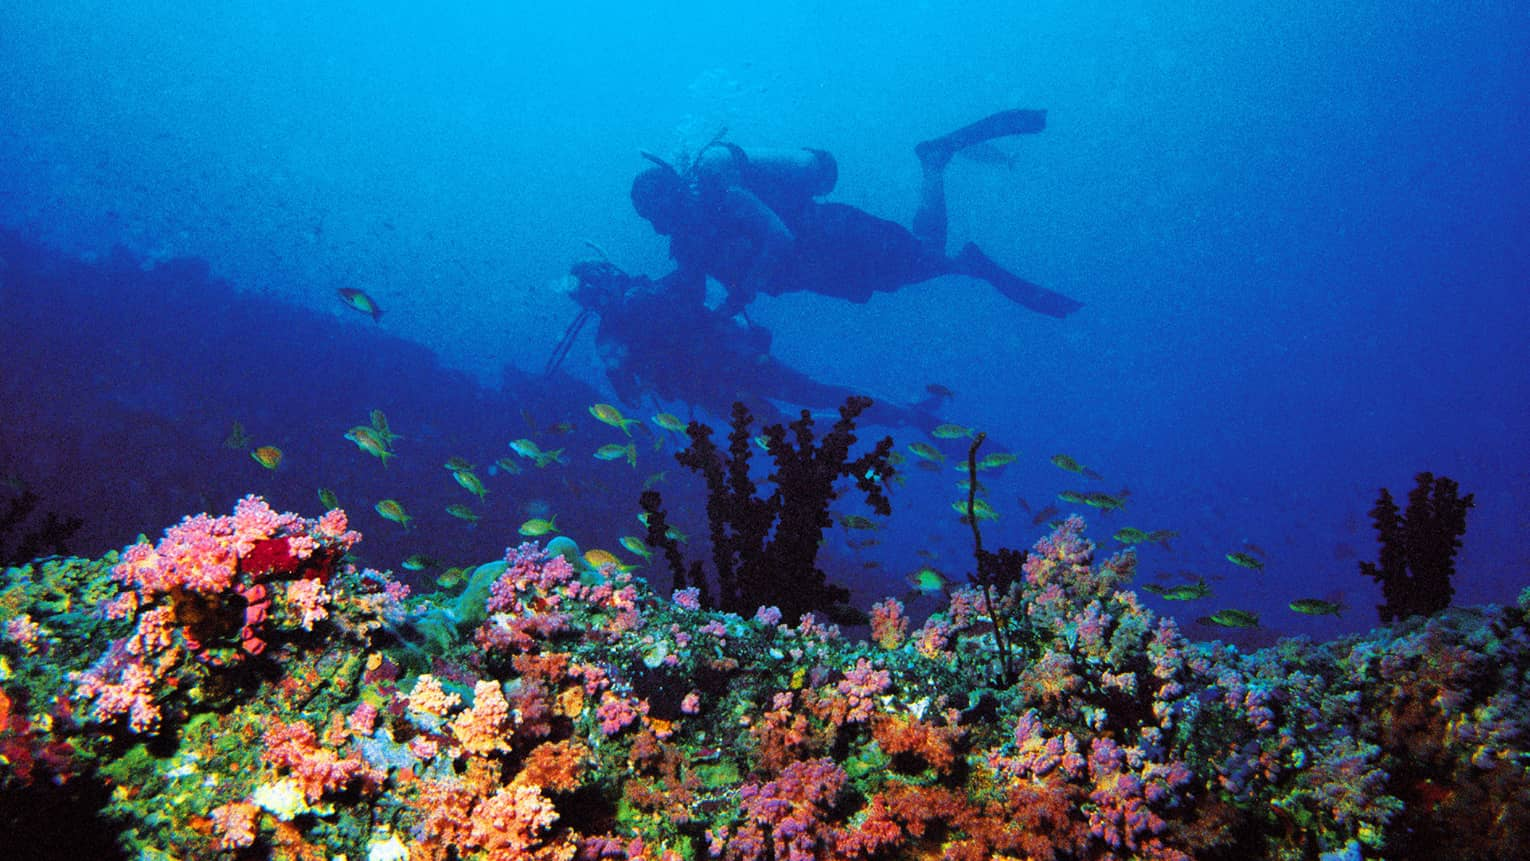 Two scuba divers explore, colourful coral reef in the foreground